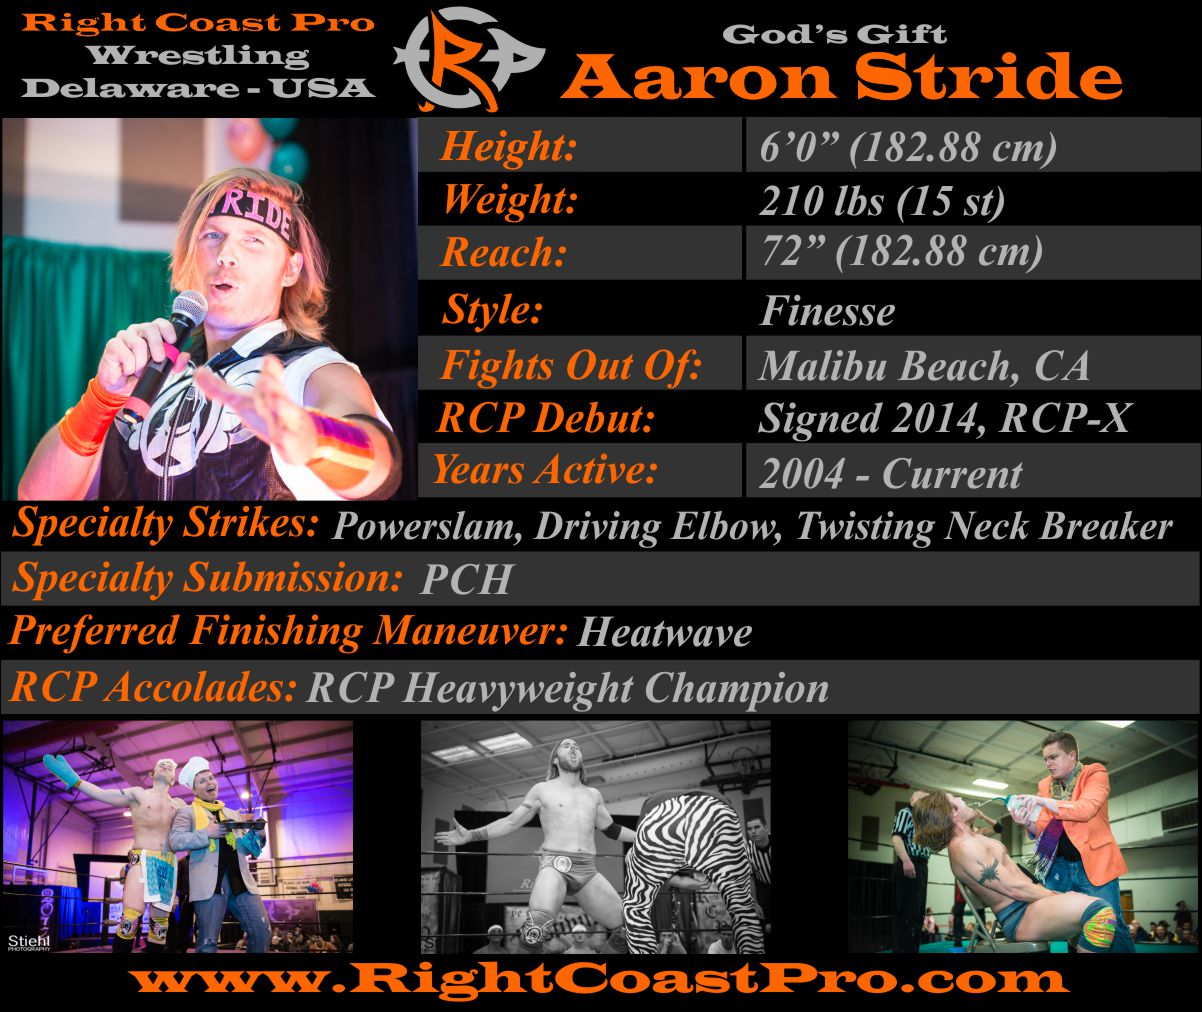 AaronStride AthleteProfile RightCoastPro Wrestling Delaware